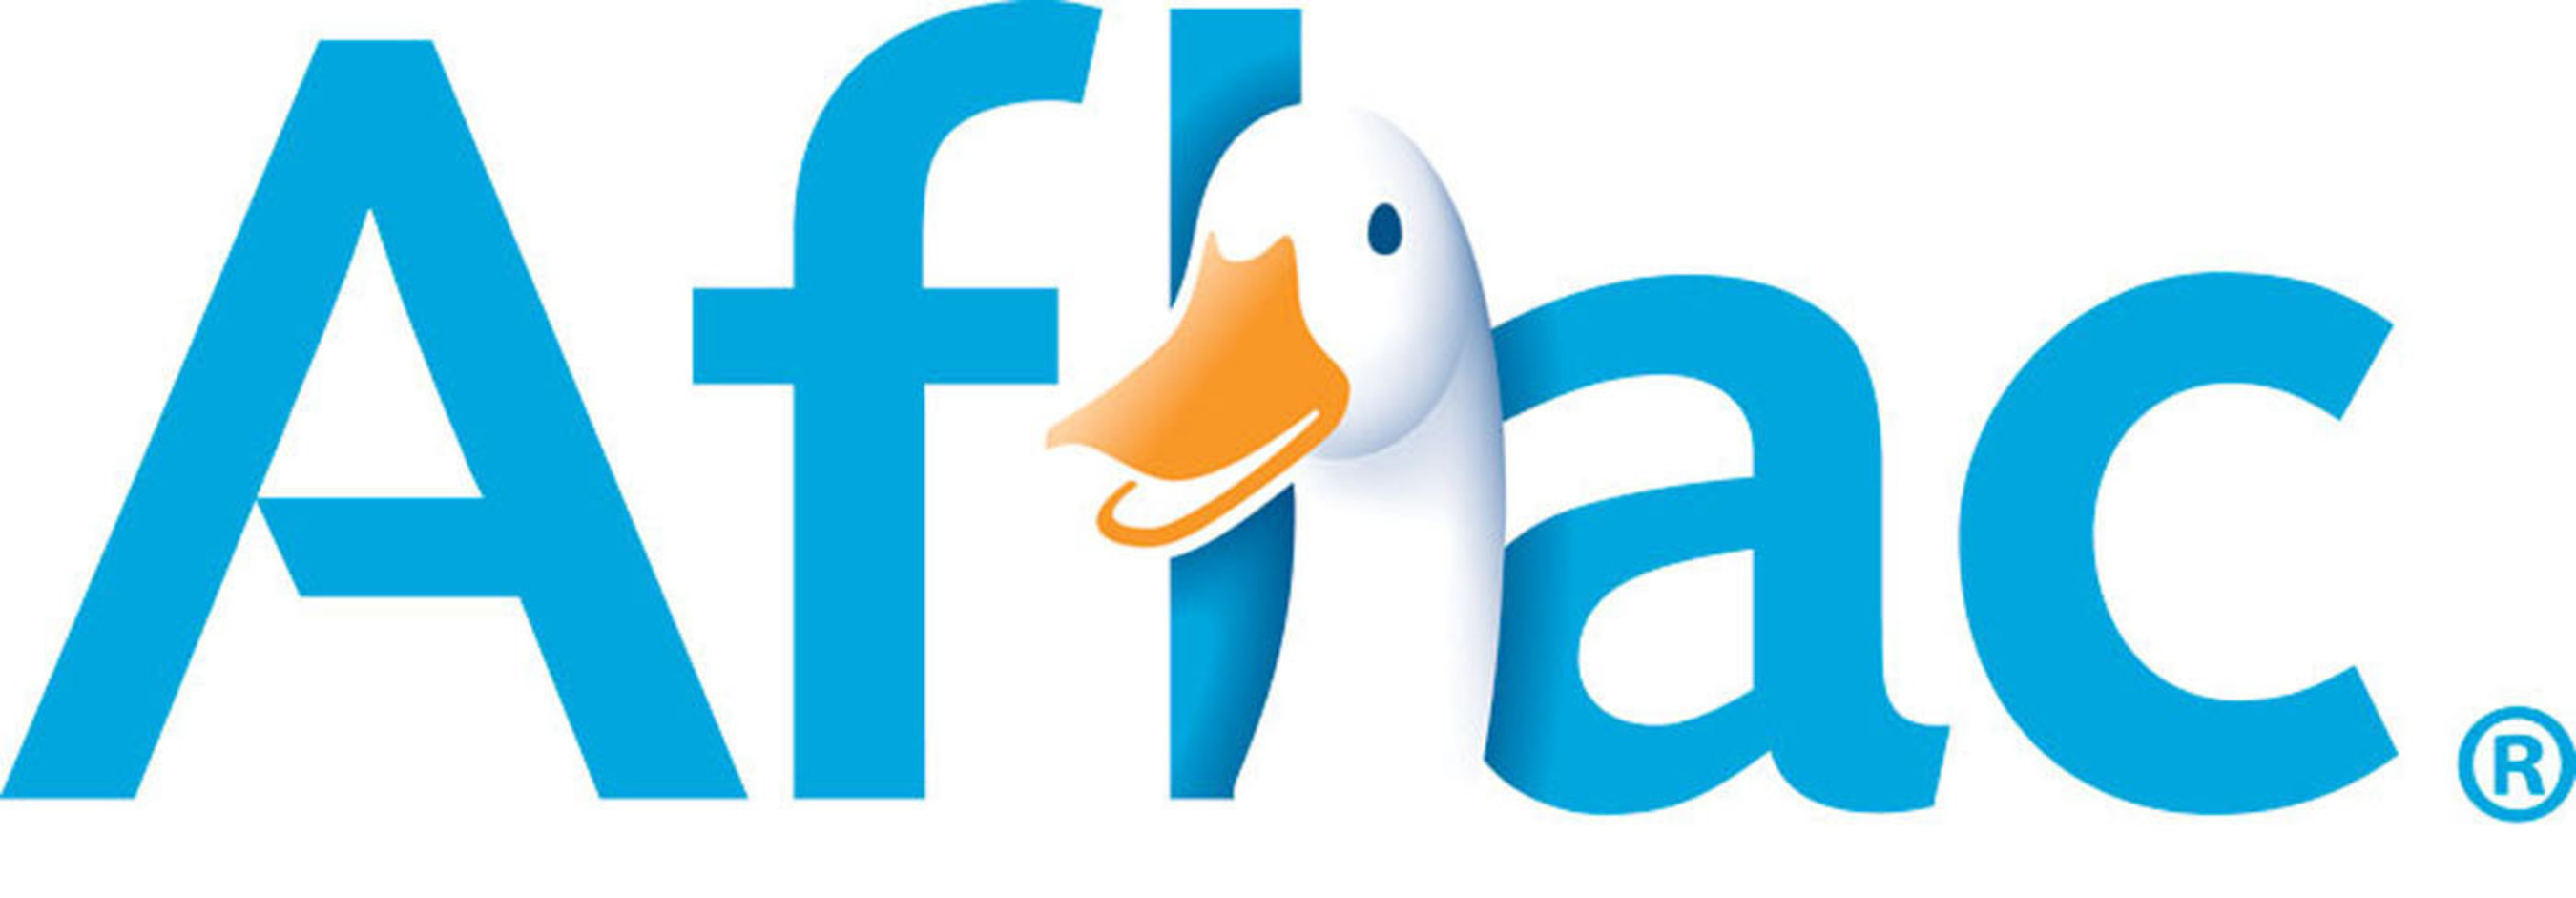 survey says aflac is top choice for benefits brokers rh prnewswire com allstate benefits login hewitt allstate benefits login hewitt